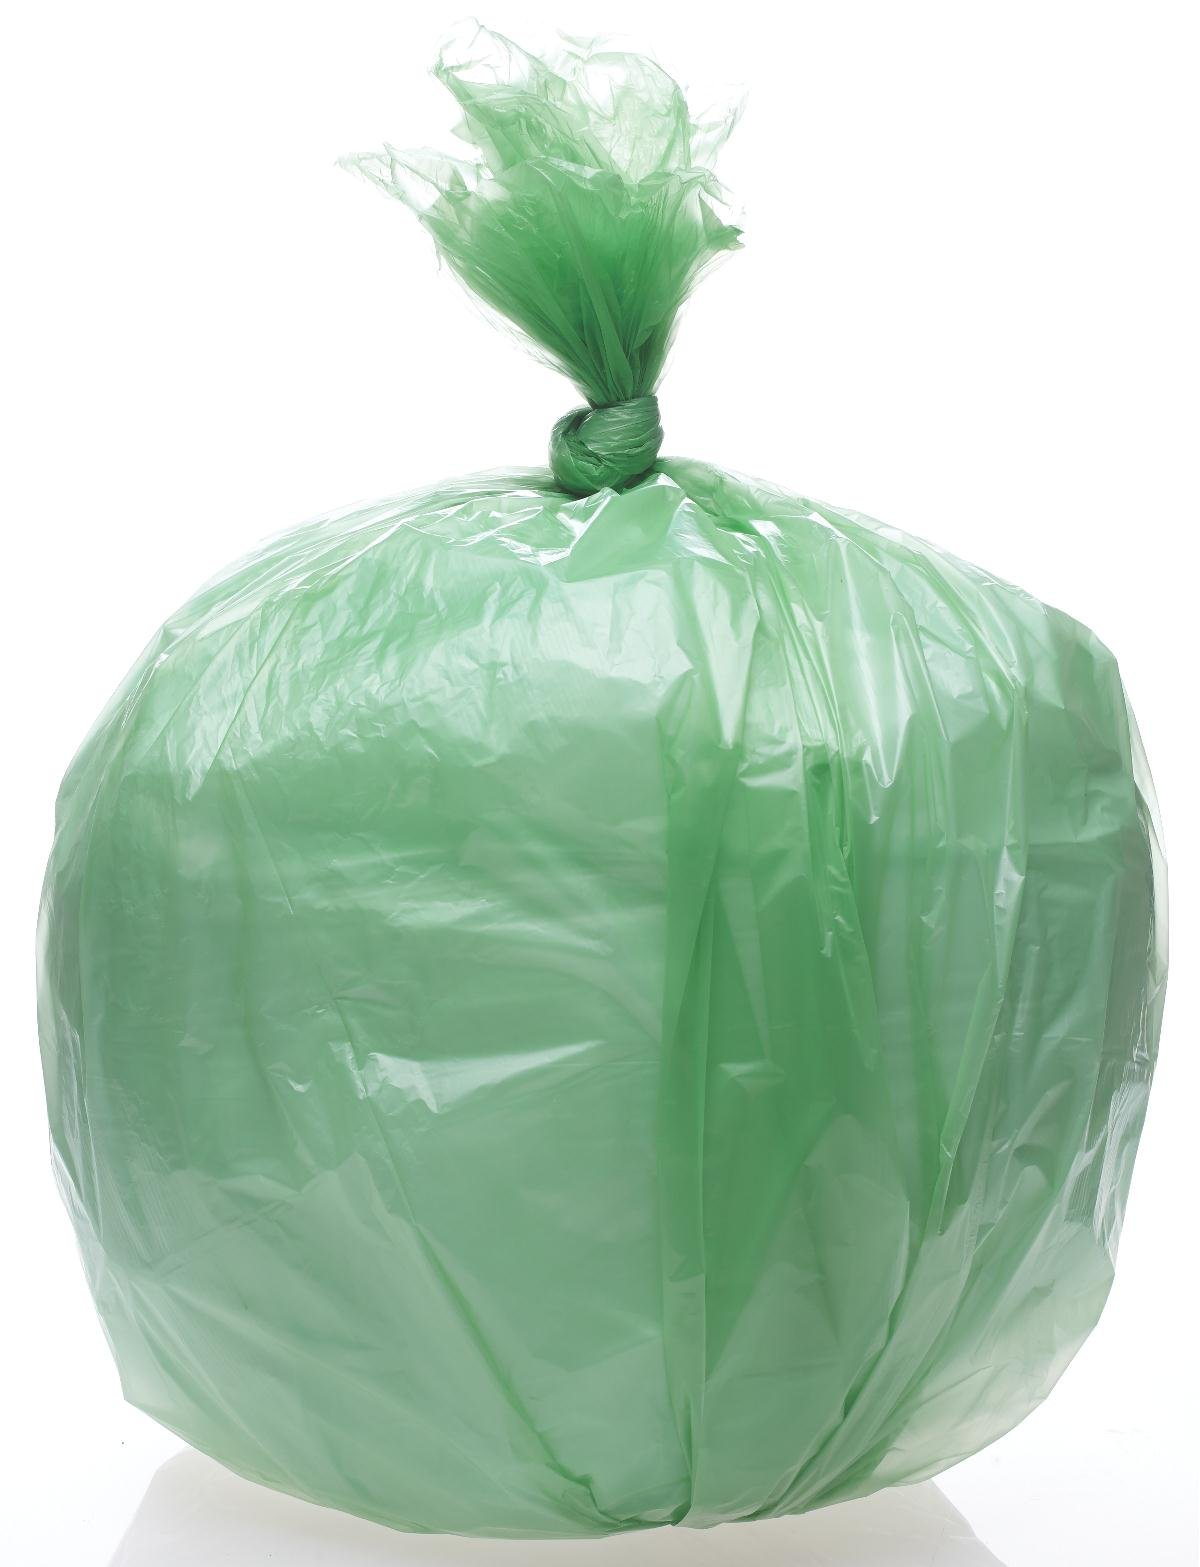 Medline NONDA404816BF Green Degradable Liners, 40'' x 48'', 16 mil (Pack of 250)